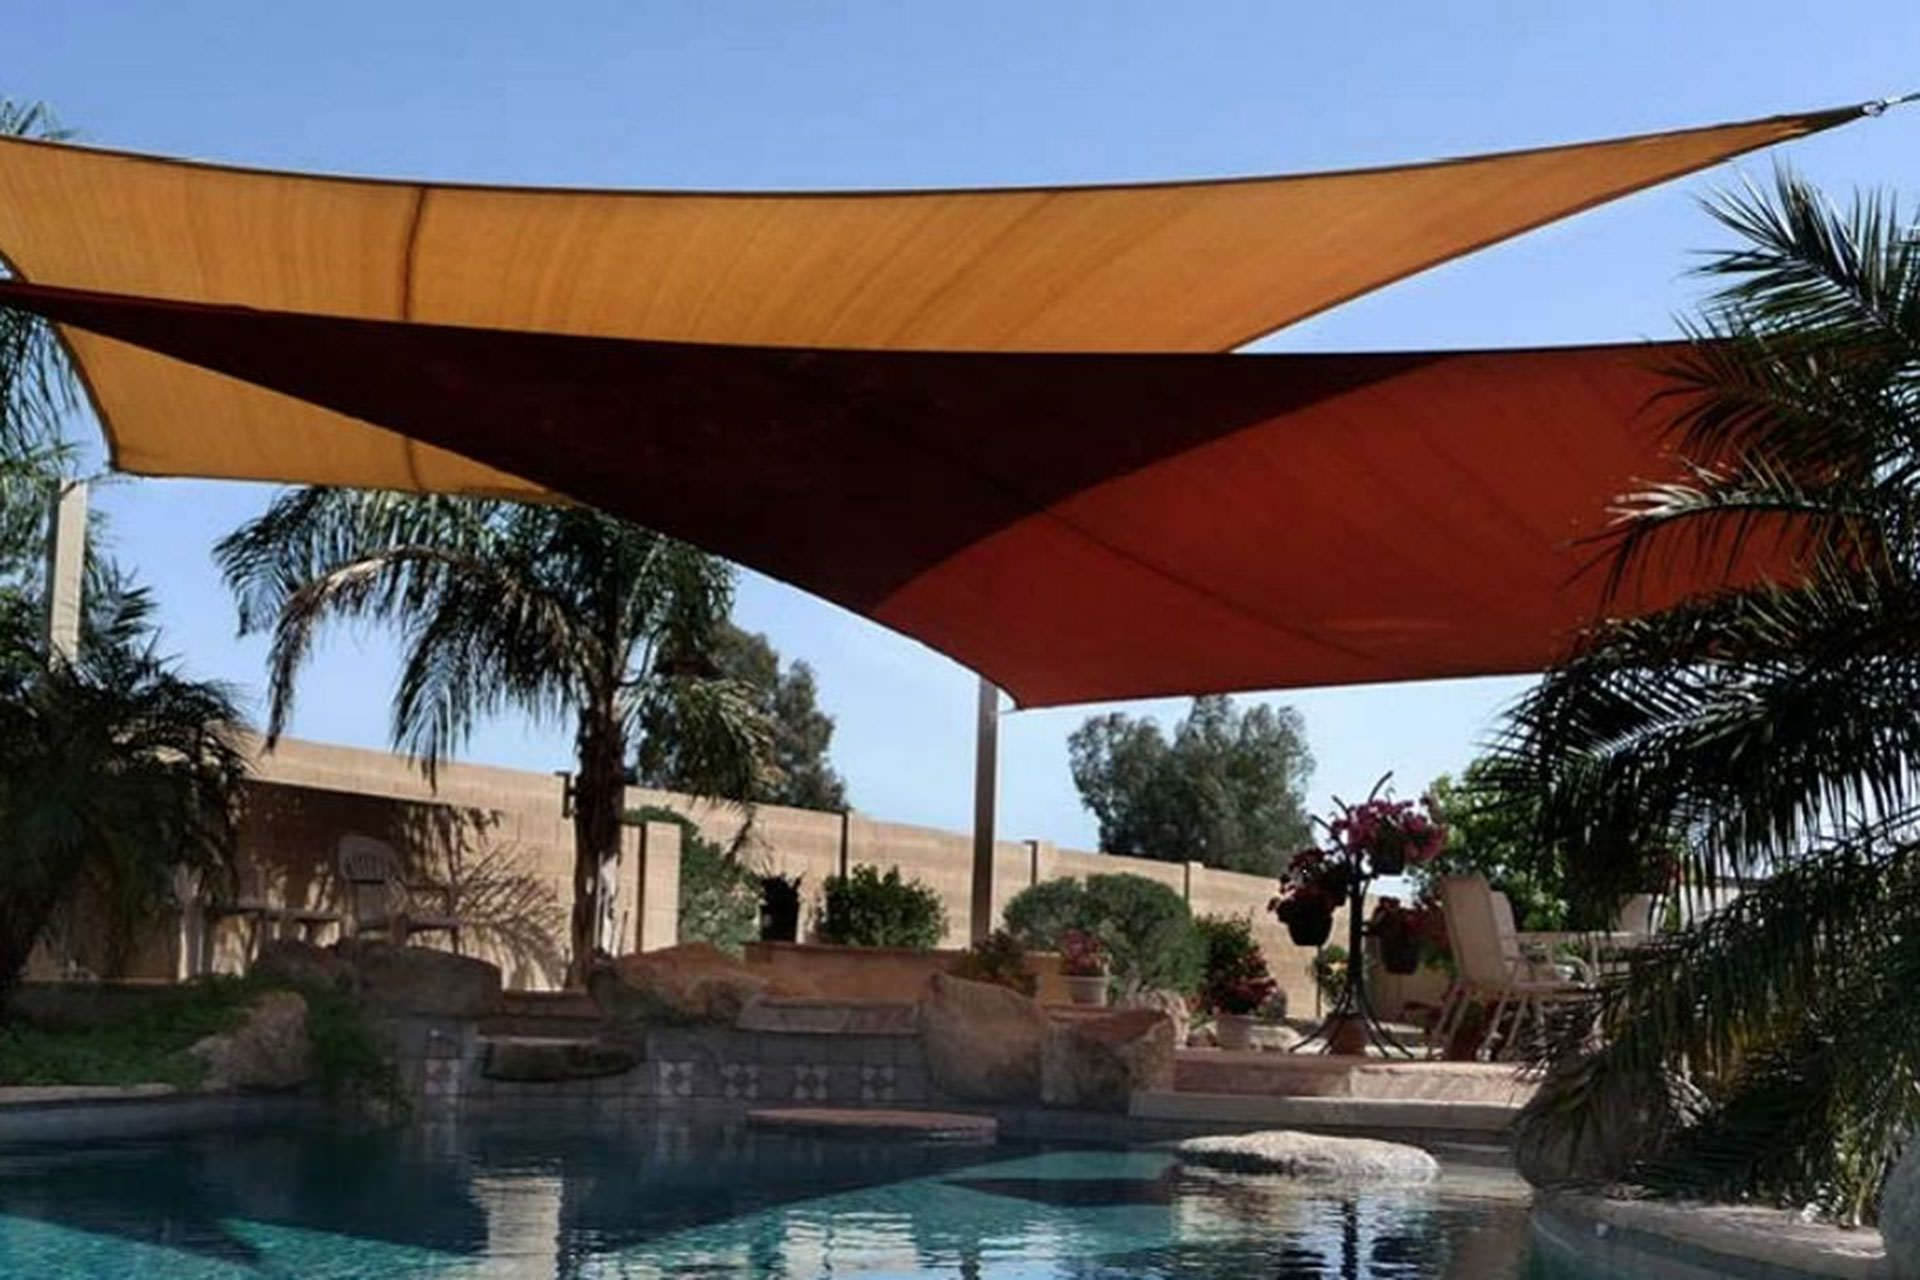 Pool Shade Ideas 7 Ways To Cover Your Swimming Pool In